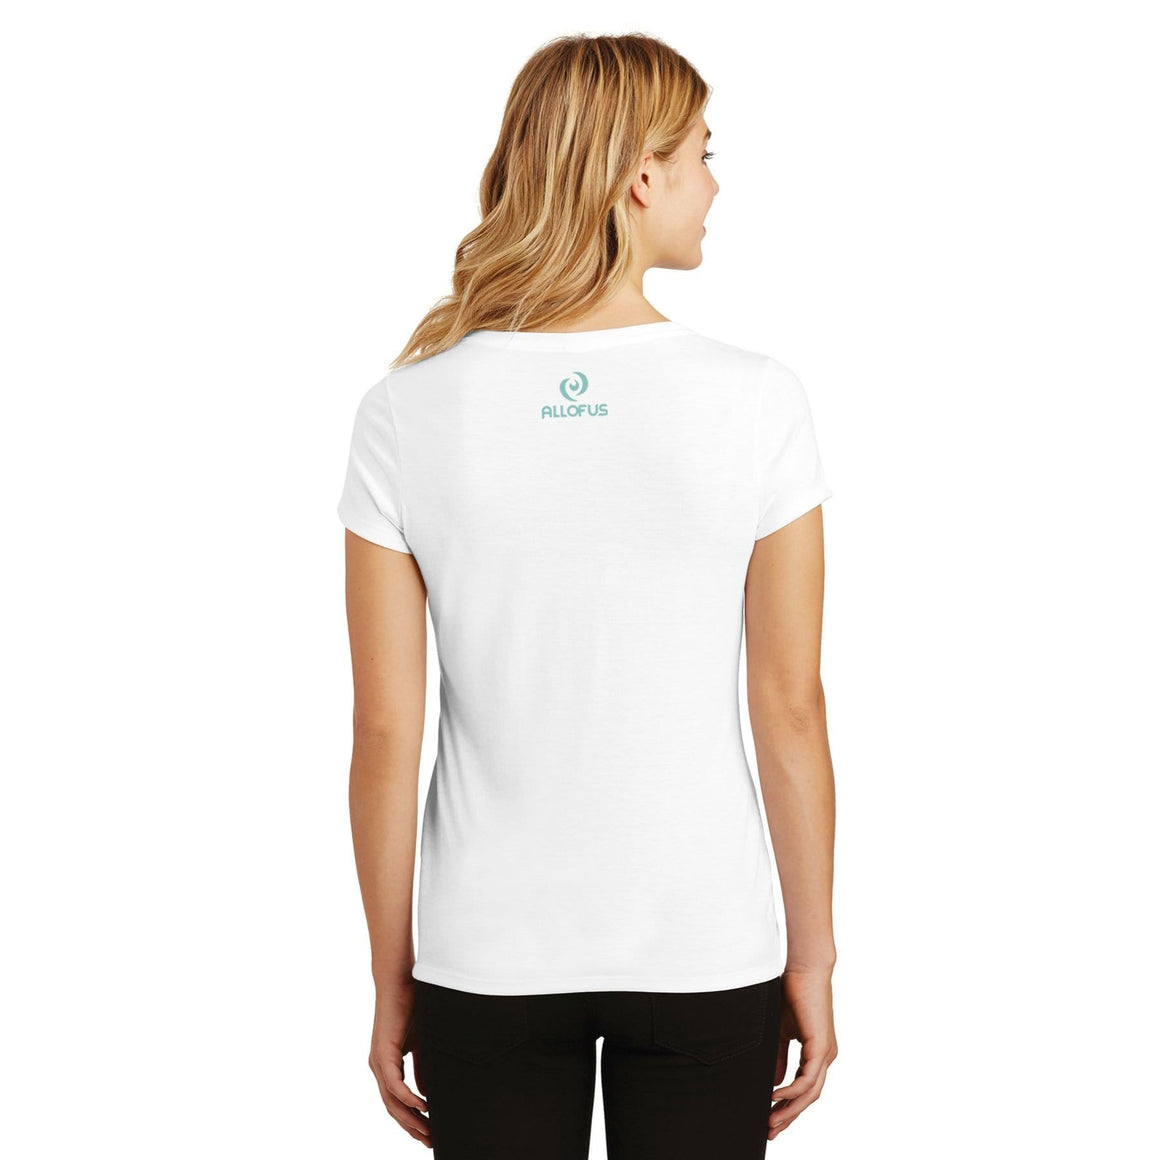 Womens All of Us White Tri-Blend V-Neck T-shirt